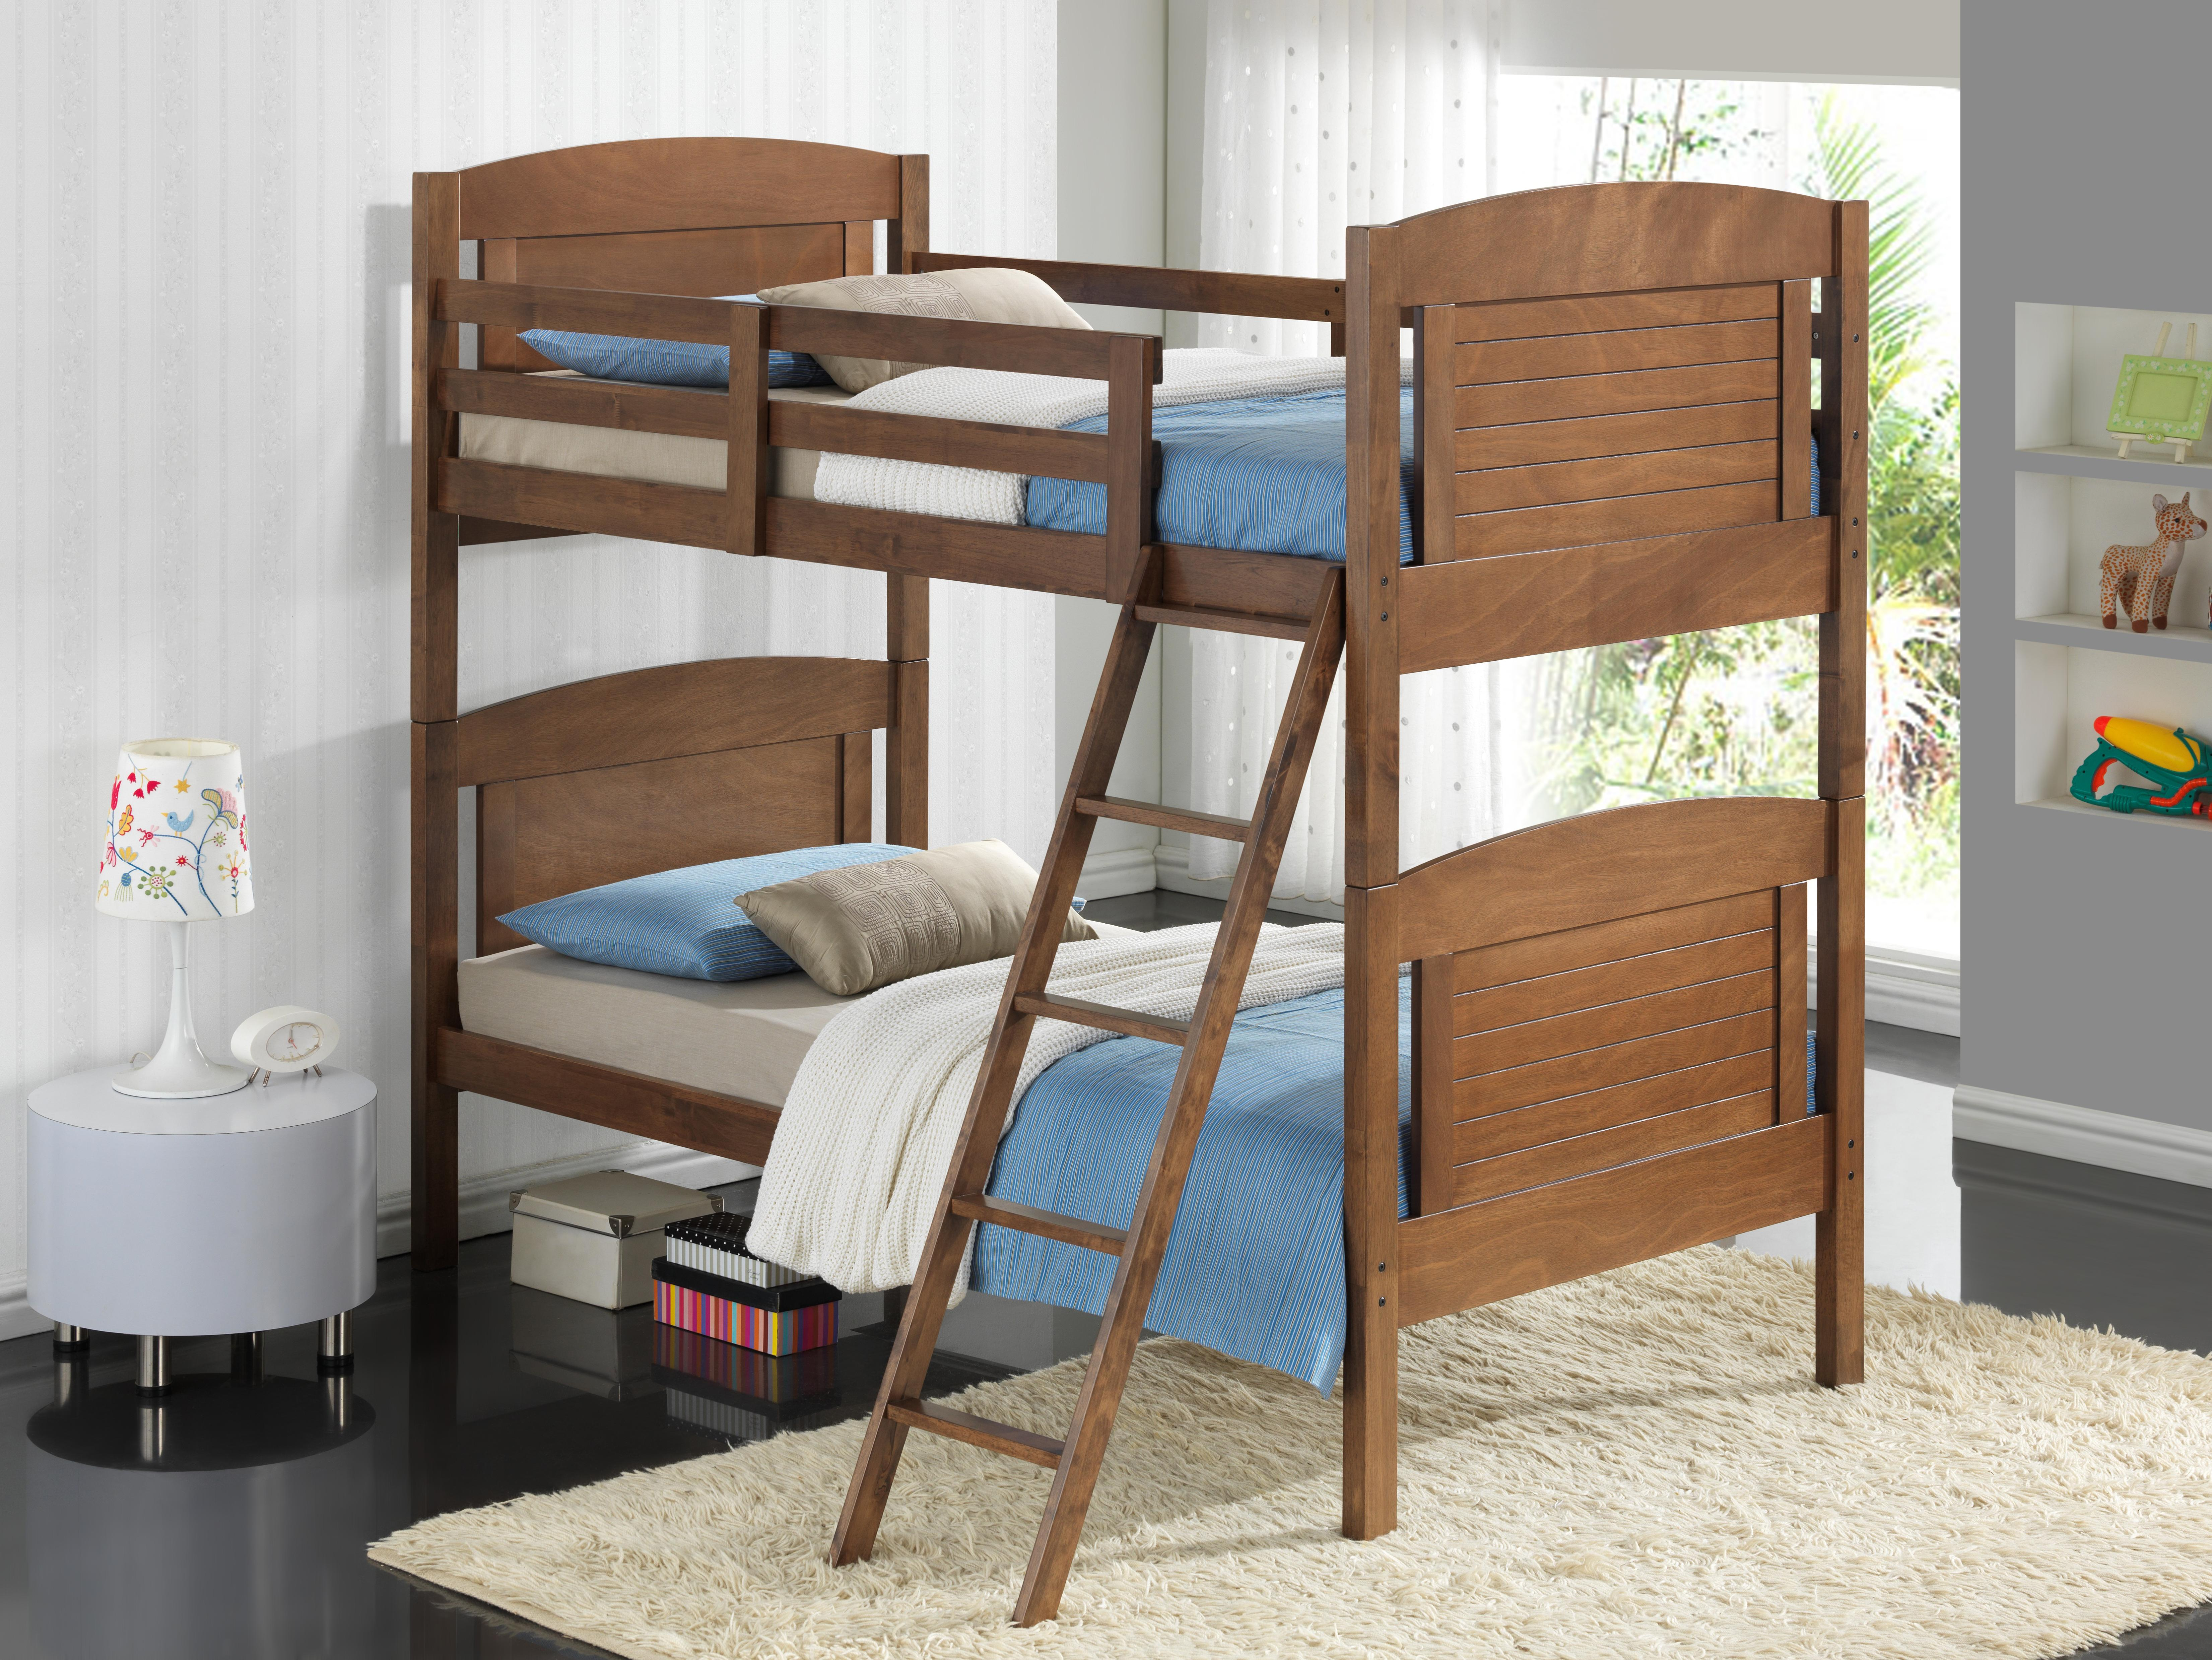 Beau Broyhill Kids Nantucket Twin Over Twin Bunk Bed Image 4 Of 4